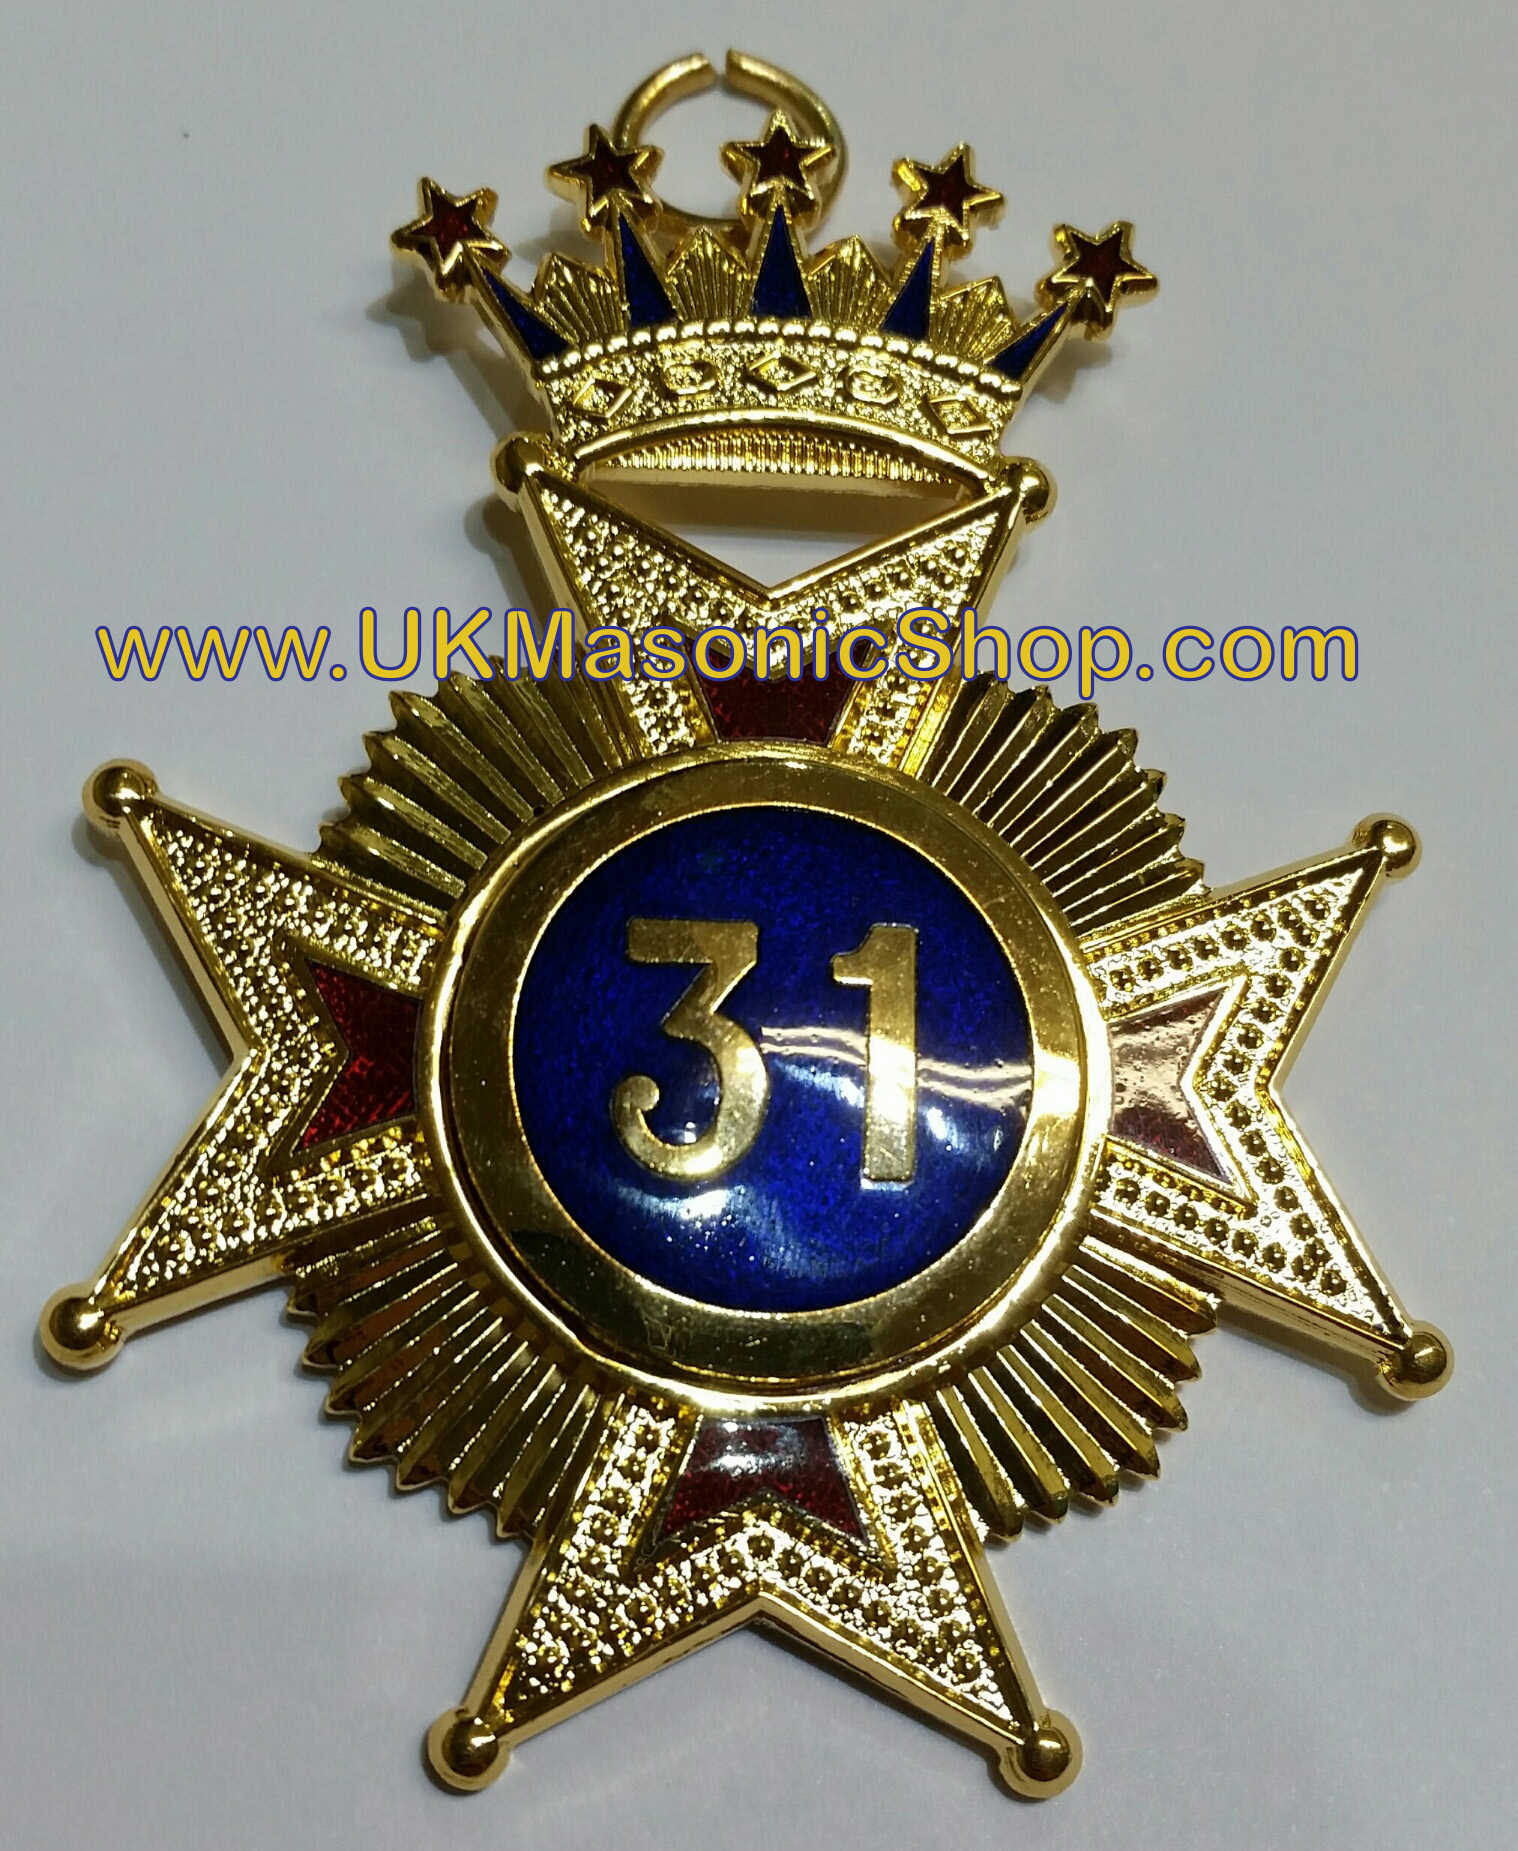 31st degree Collar Jewel